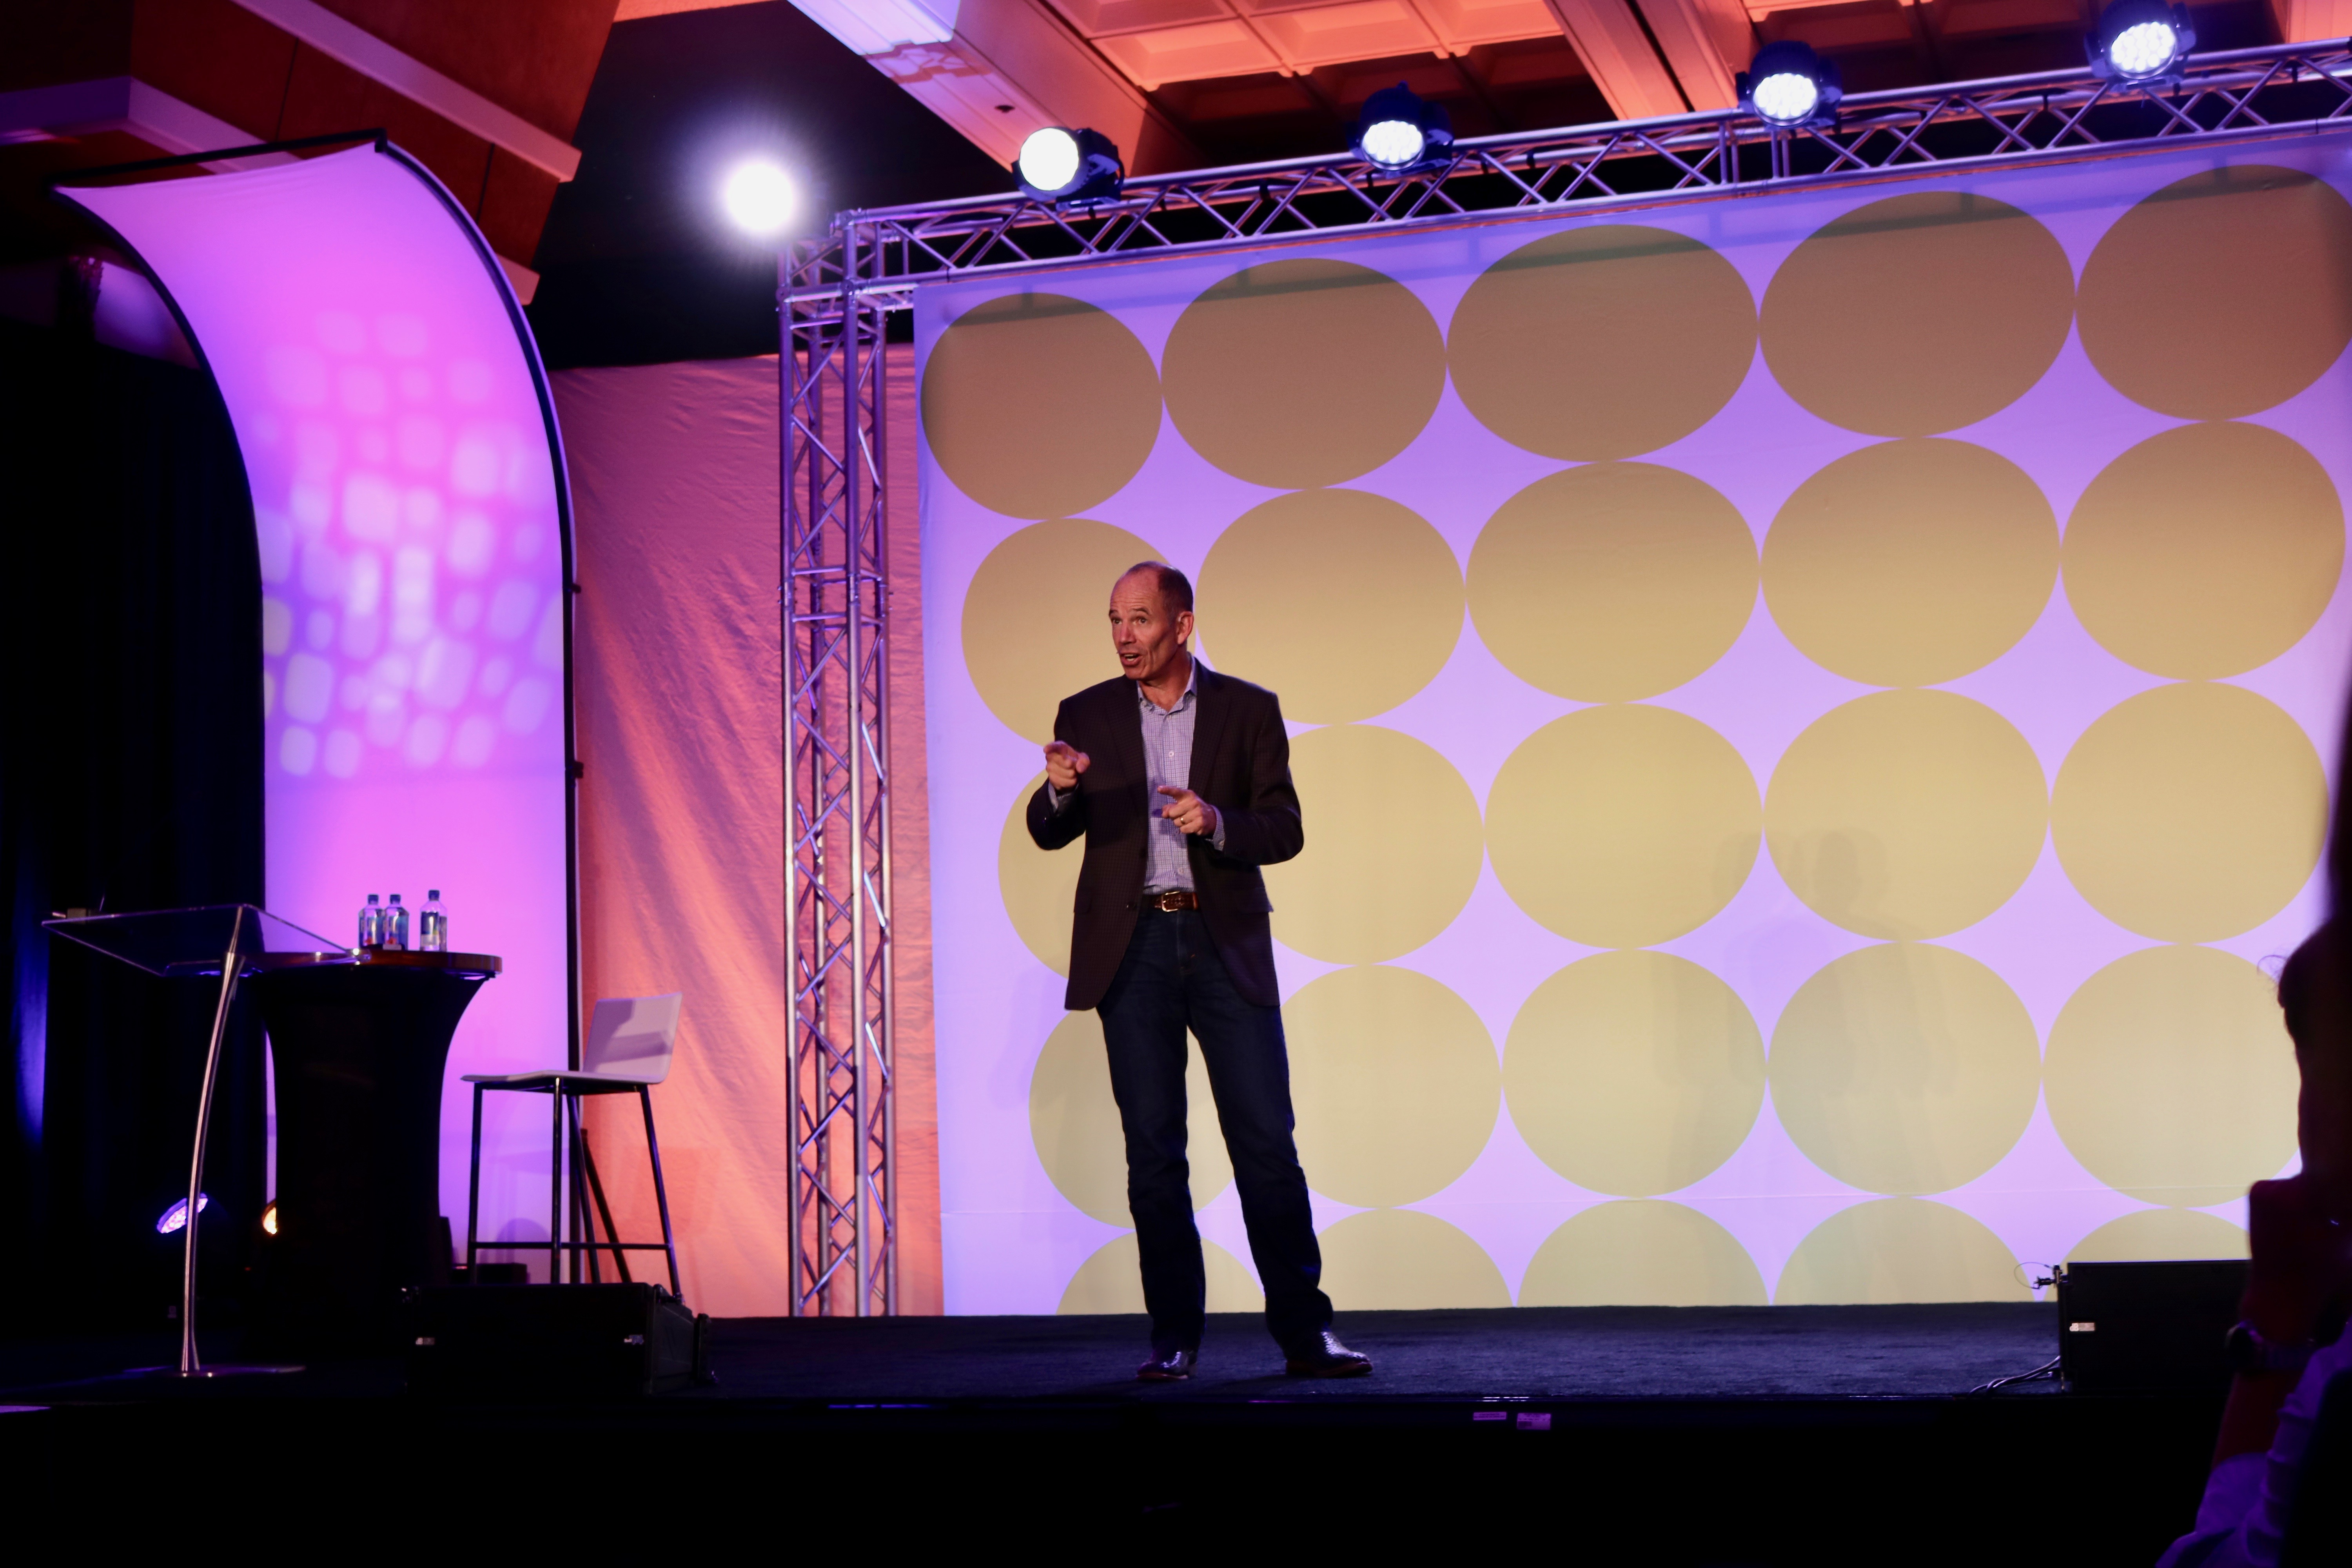 Marc Randolph, the Co- Founder of Netflix, speaking on the main stage at ONTRApalooza 2016.